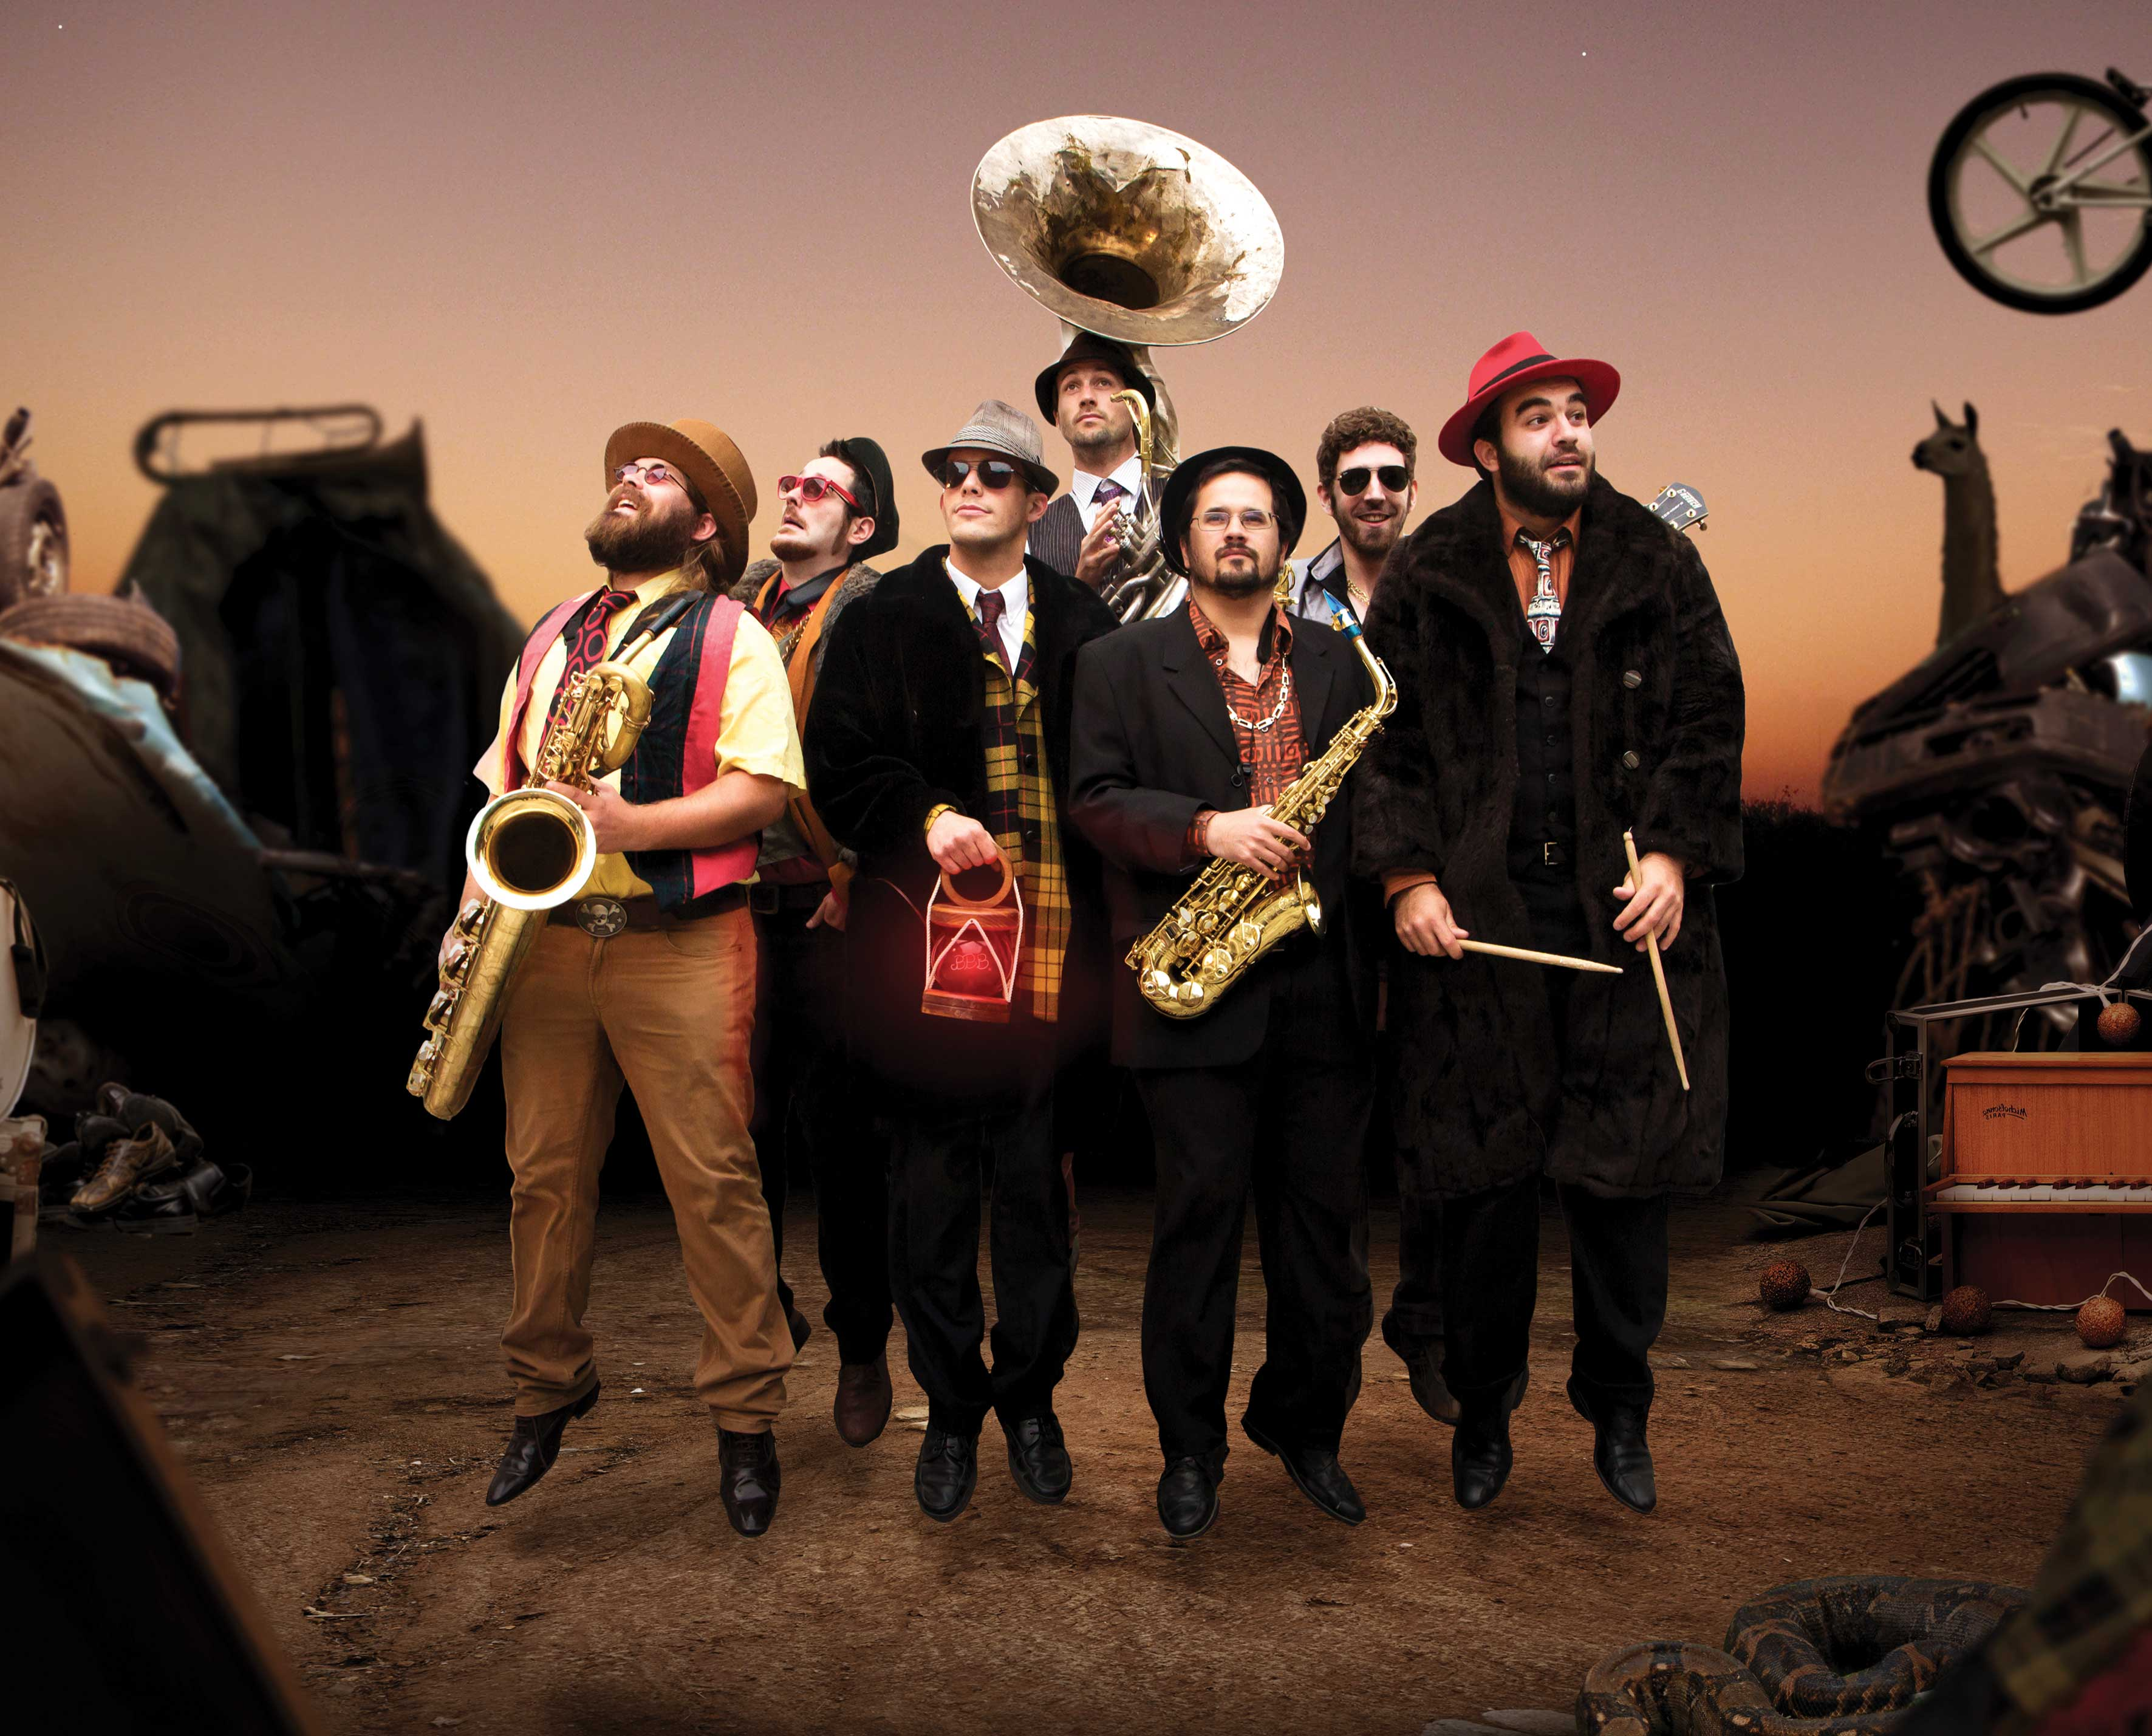 Images of The Dirty Dozen Brass Band | 3543x2858